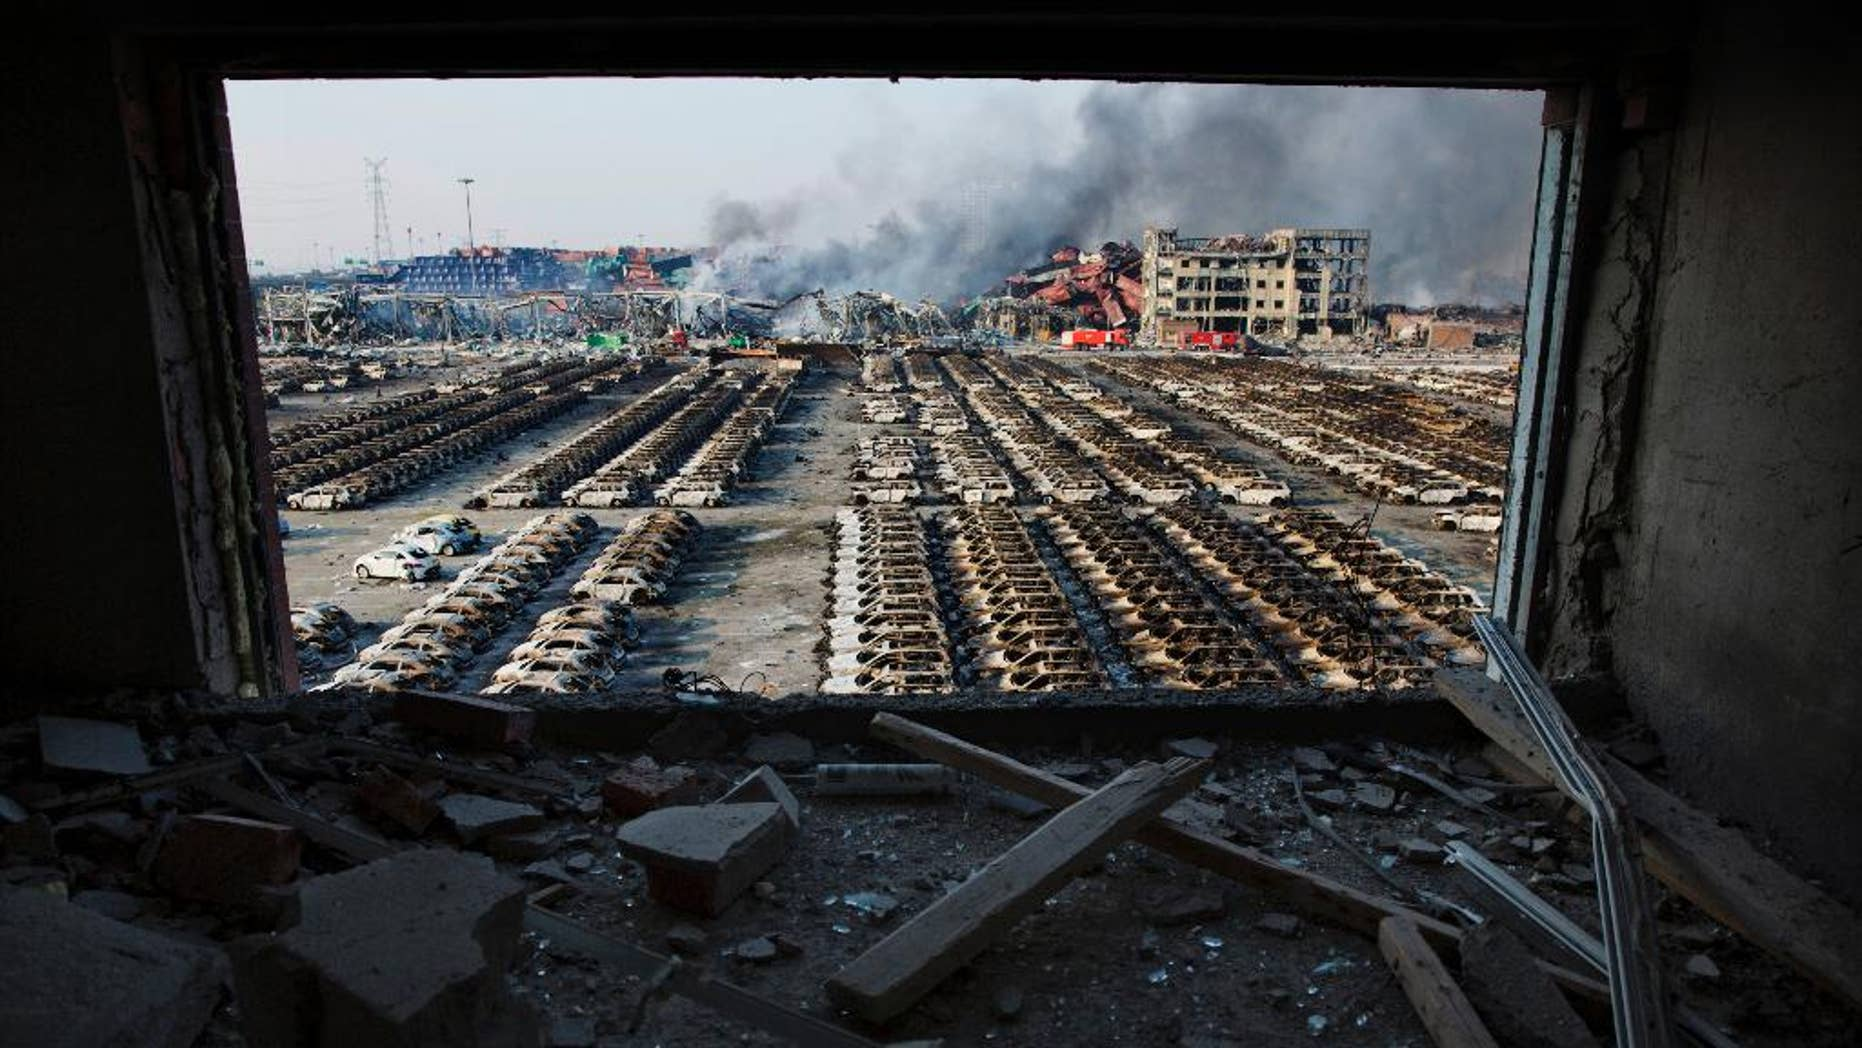 FILE - In this Aug. 13, 2015 photo, a shattered window frames the site of an explosion at a port warehouse in northeastern China's Tianjin municipality. Chinese prosecutors have detained 11 government officials and company executives over a massive warehouse explosion that killed at least 139 people in the country's worst industrial disaster in recent years.  (AP Photo/Ng Han Guan. File)